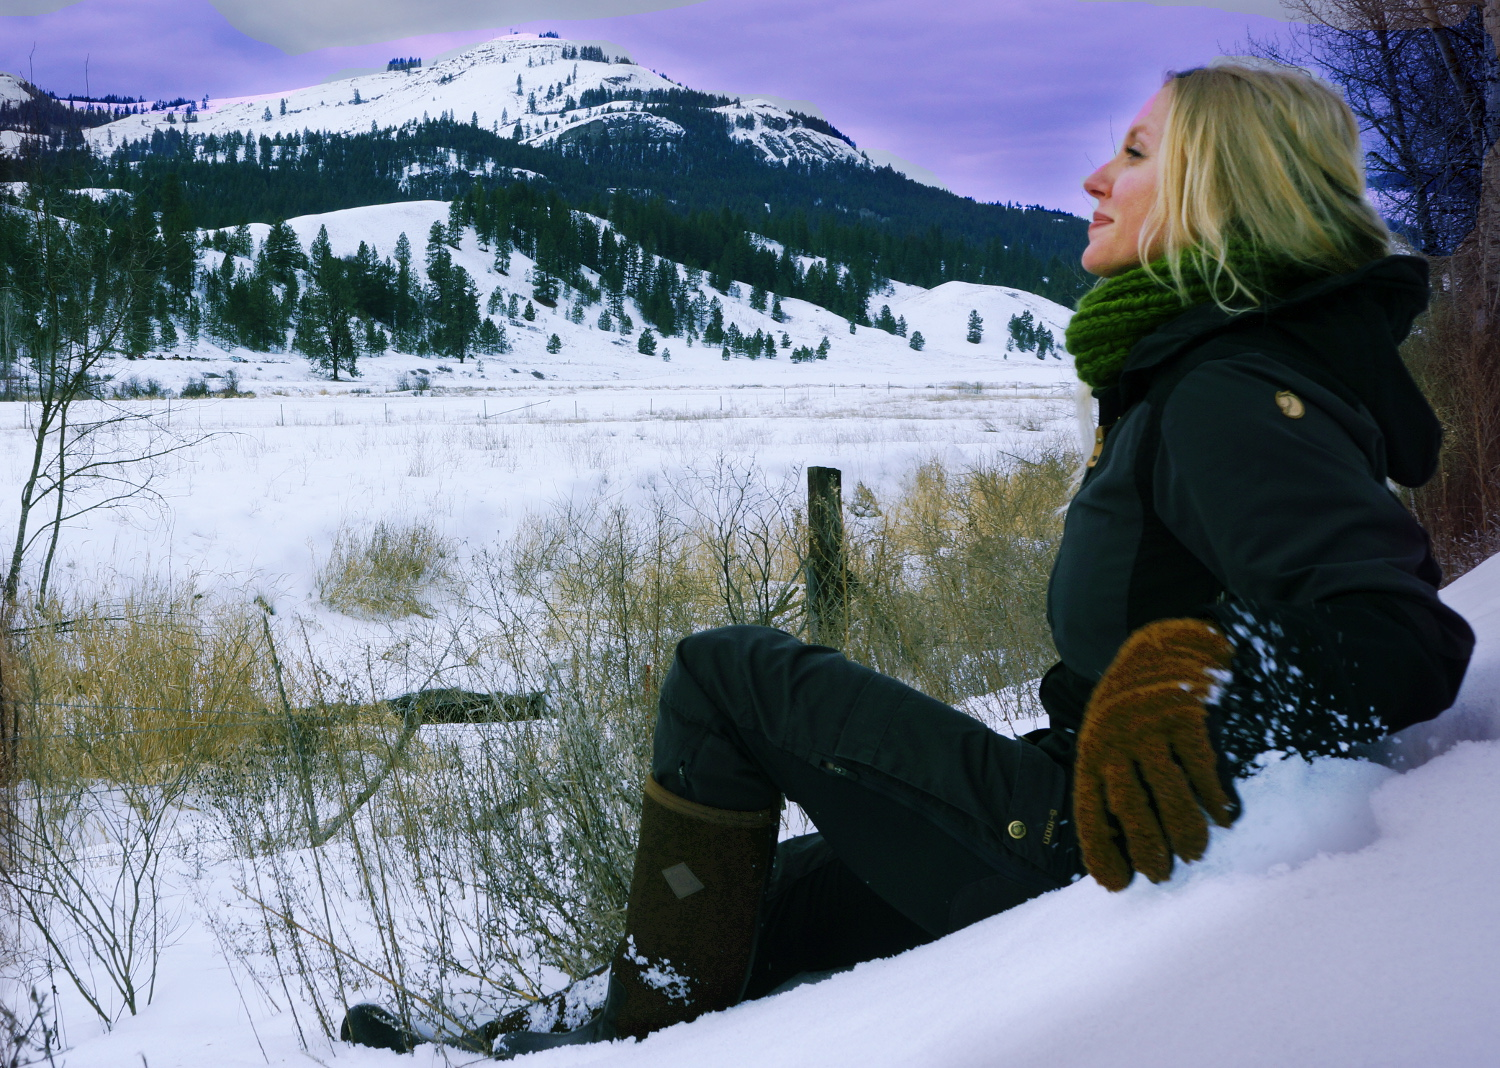 Tiffany Davidson Washington's Last Frontier Our Favorite Cold Weather Hunting Gear 2018 extreme cold weather clothing, best cold weather hunting gear 2018, cold weather hunting bibs, extreme cold weather hunting gear, cabelas cold weather hunting clothes, best hunting bibs for cold weather, winter hunting gear, womens winter hunting gear, cold weather hunting apparel, best cold weather bow hunting clothing, warmest hunting gear, warmest hunting bibs, winter hunting gear, off grid blog, homesteading blog, wilderness living blog, life in washington state blog, work online from anywhere, living off the land, back to the land movement modern